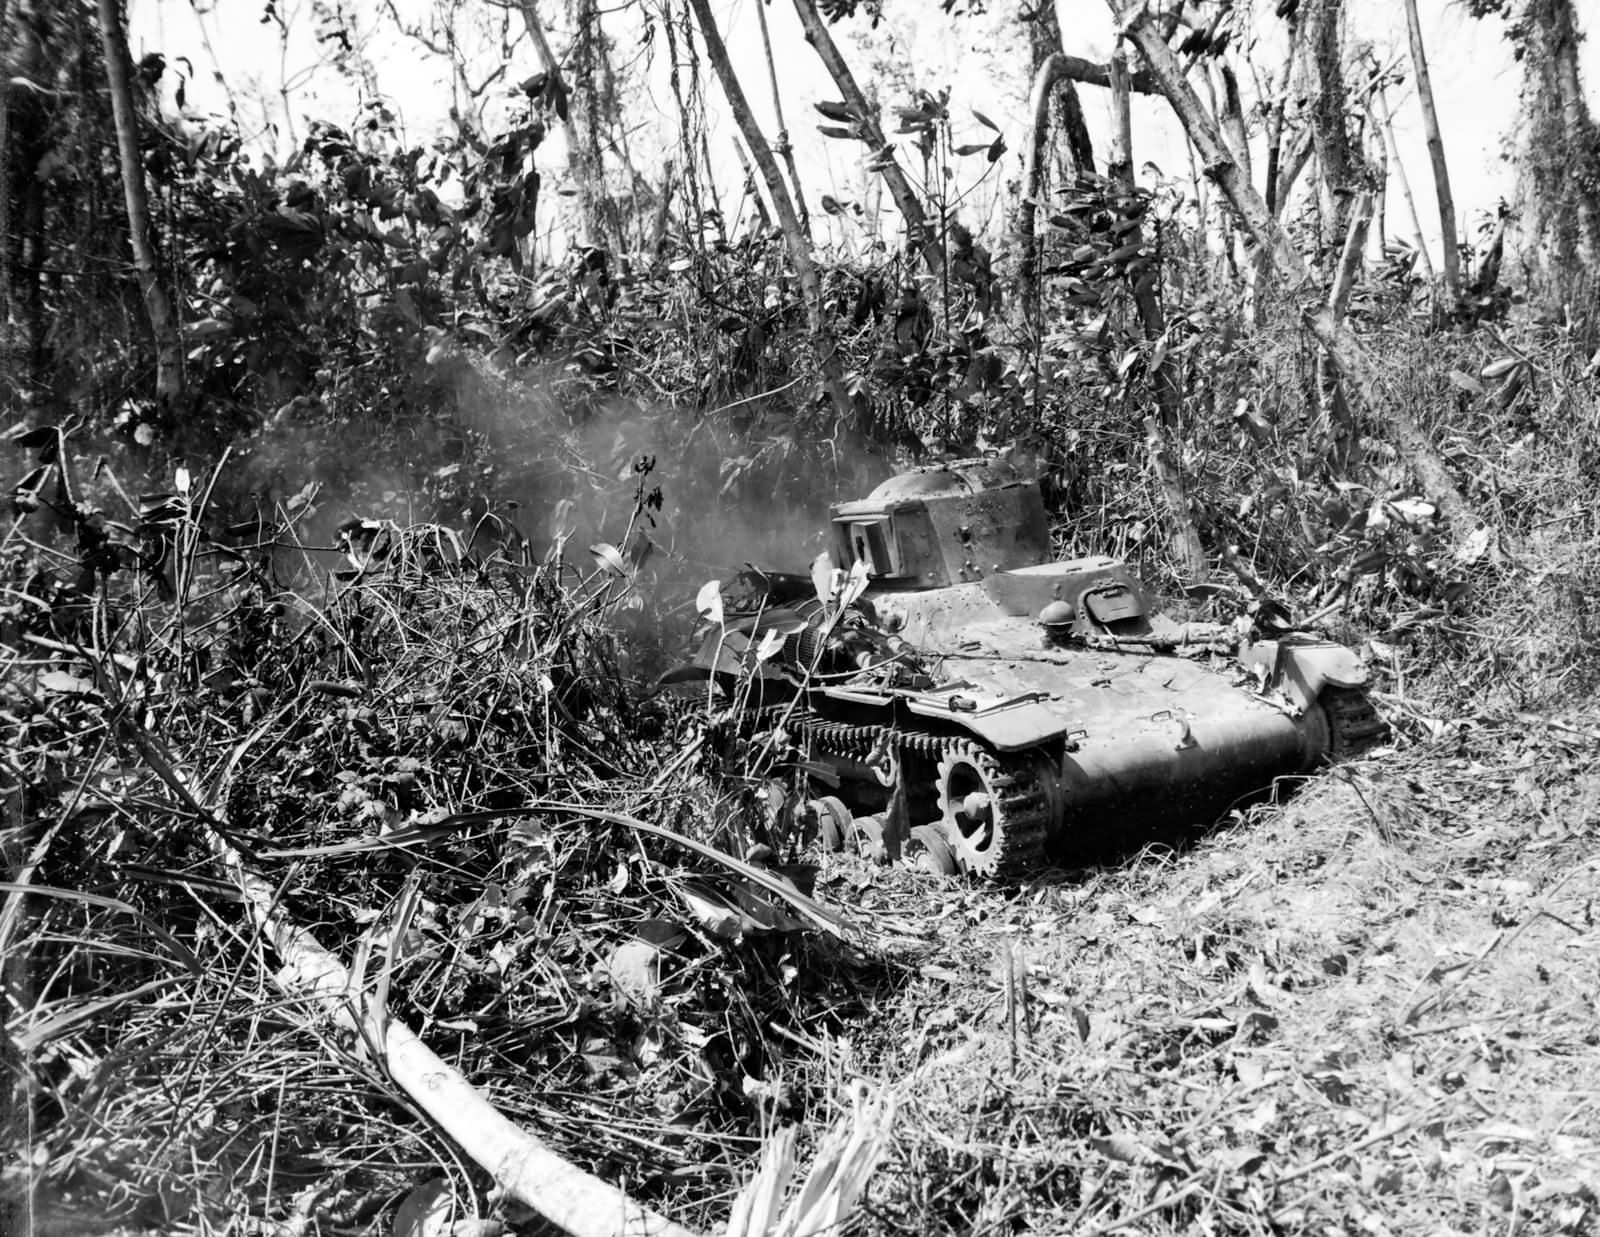 Japanese Type 97 Te Ke tankette destroyed by 4th Marine Division Kwajalein 1944